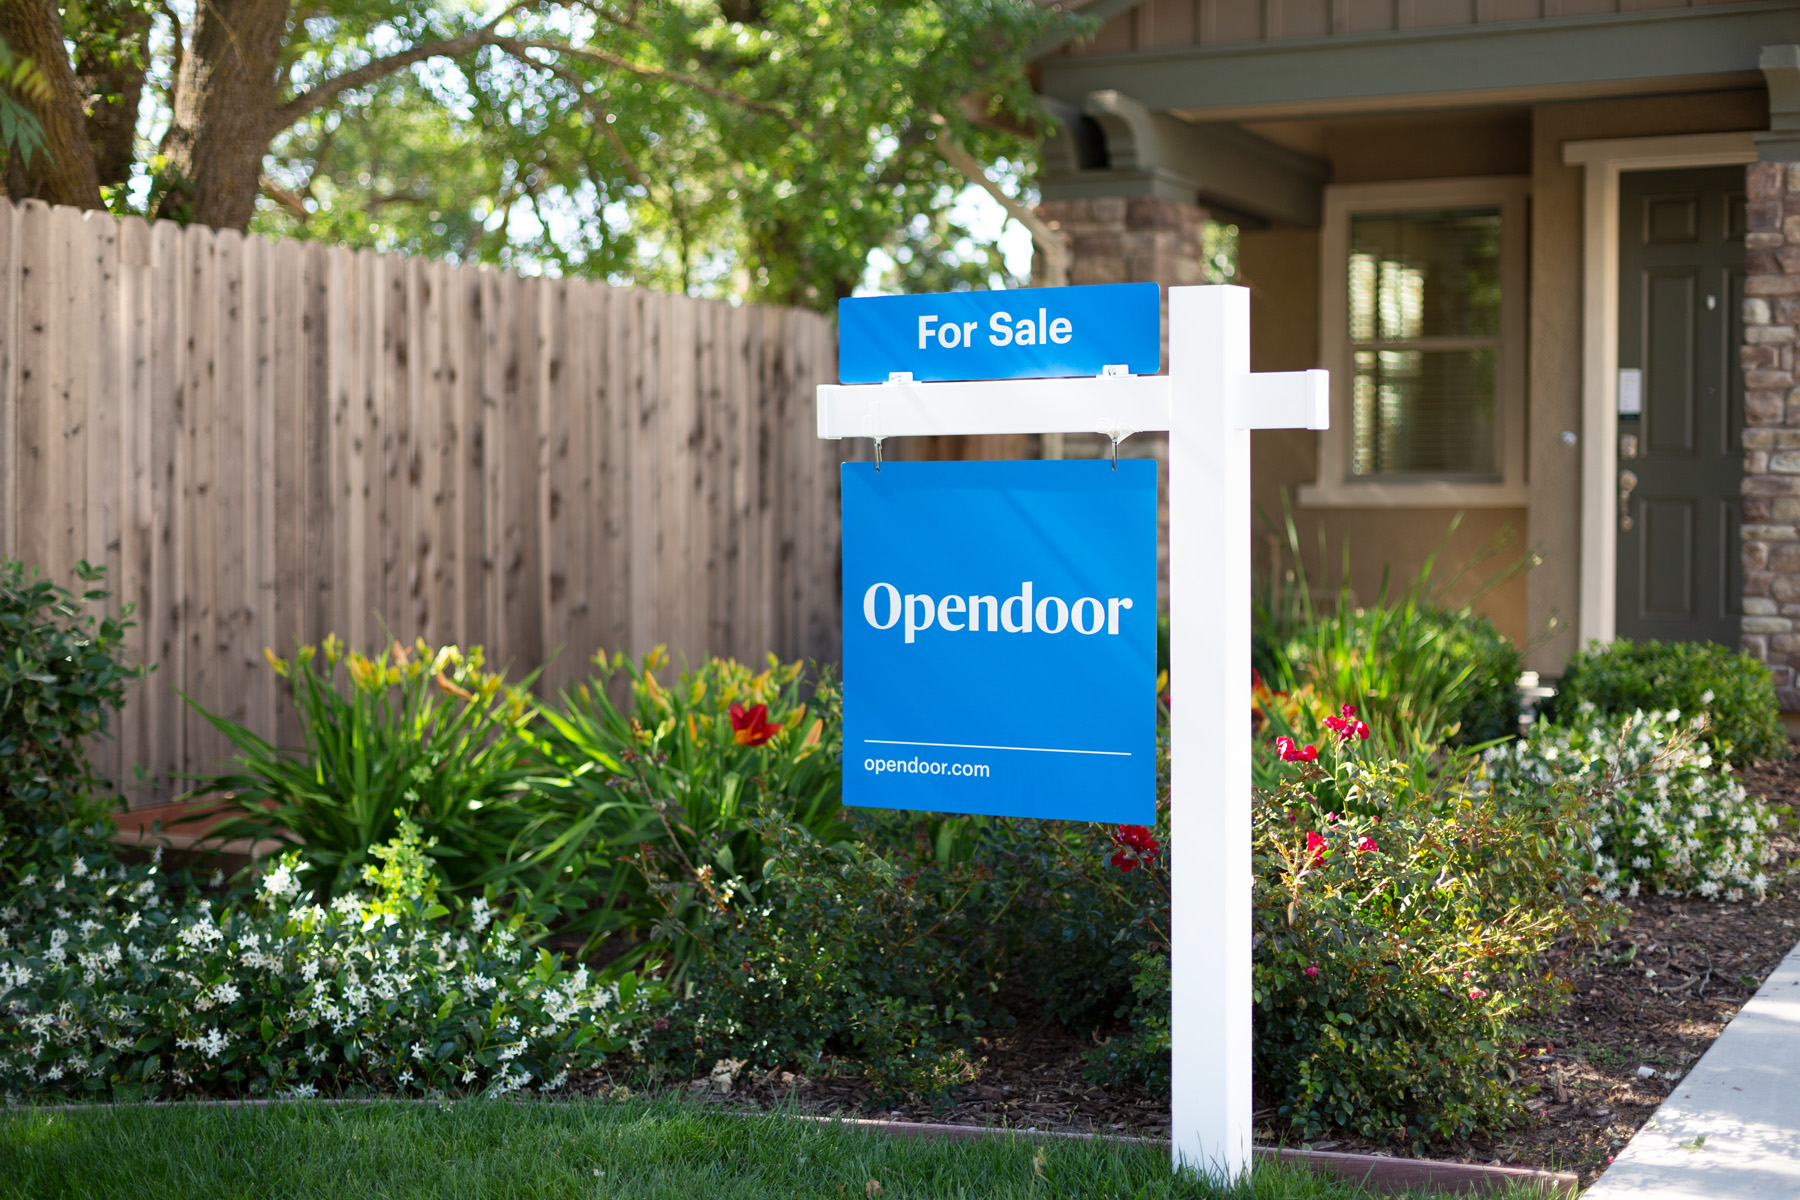 For sale sign in front of a home